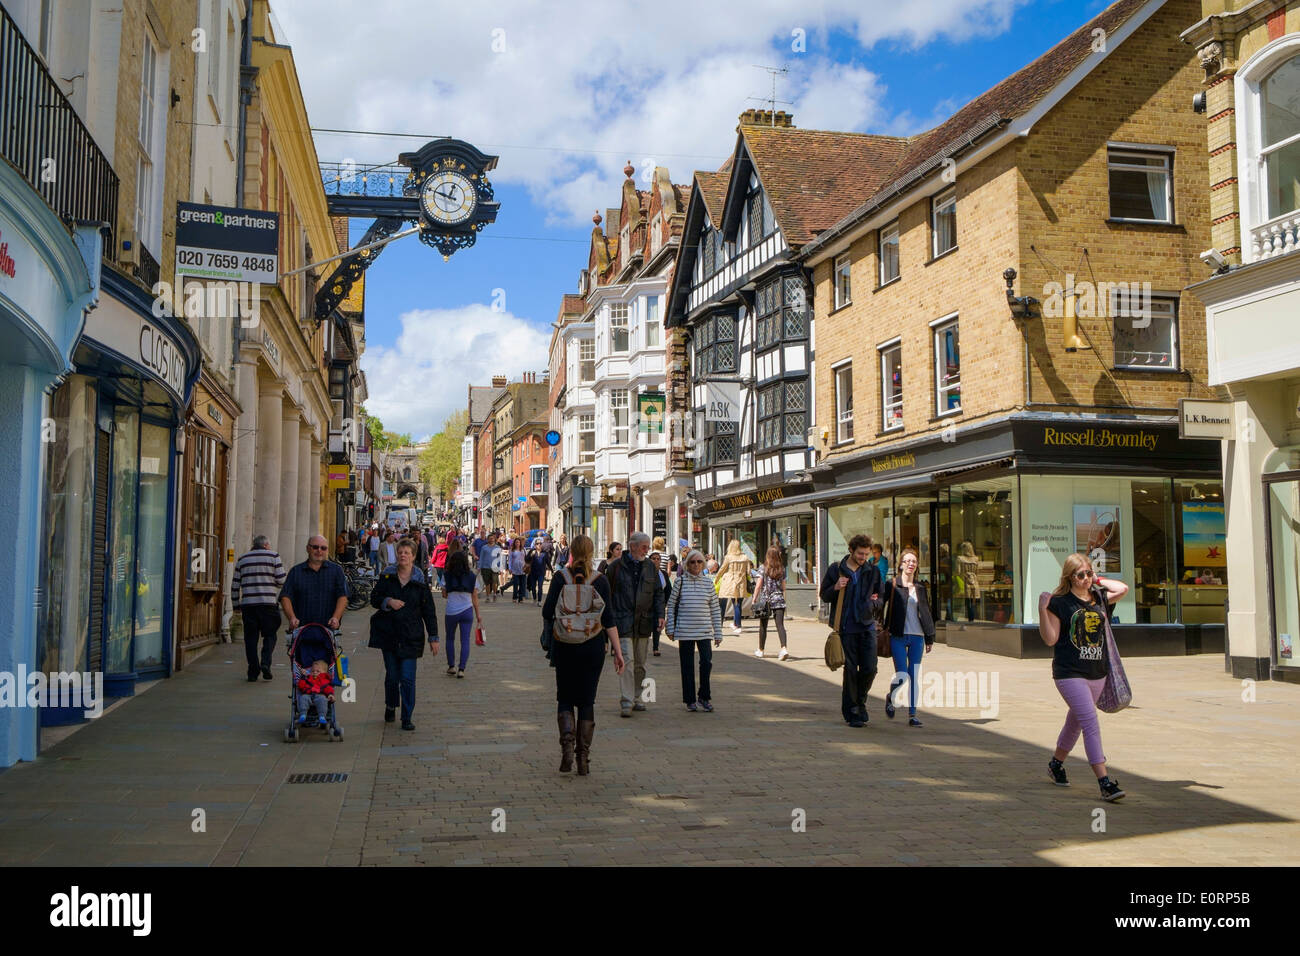 The High Street in Winchester, Hampshire, England, UK - Stock Image